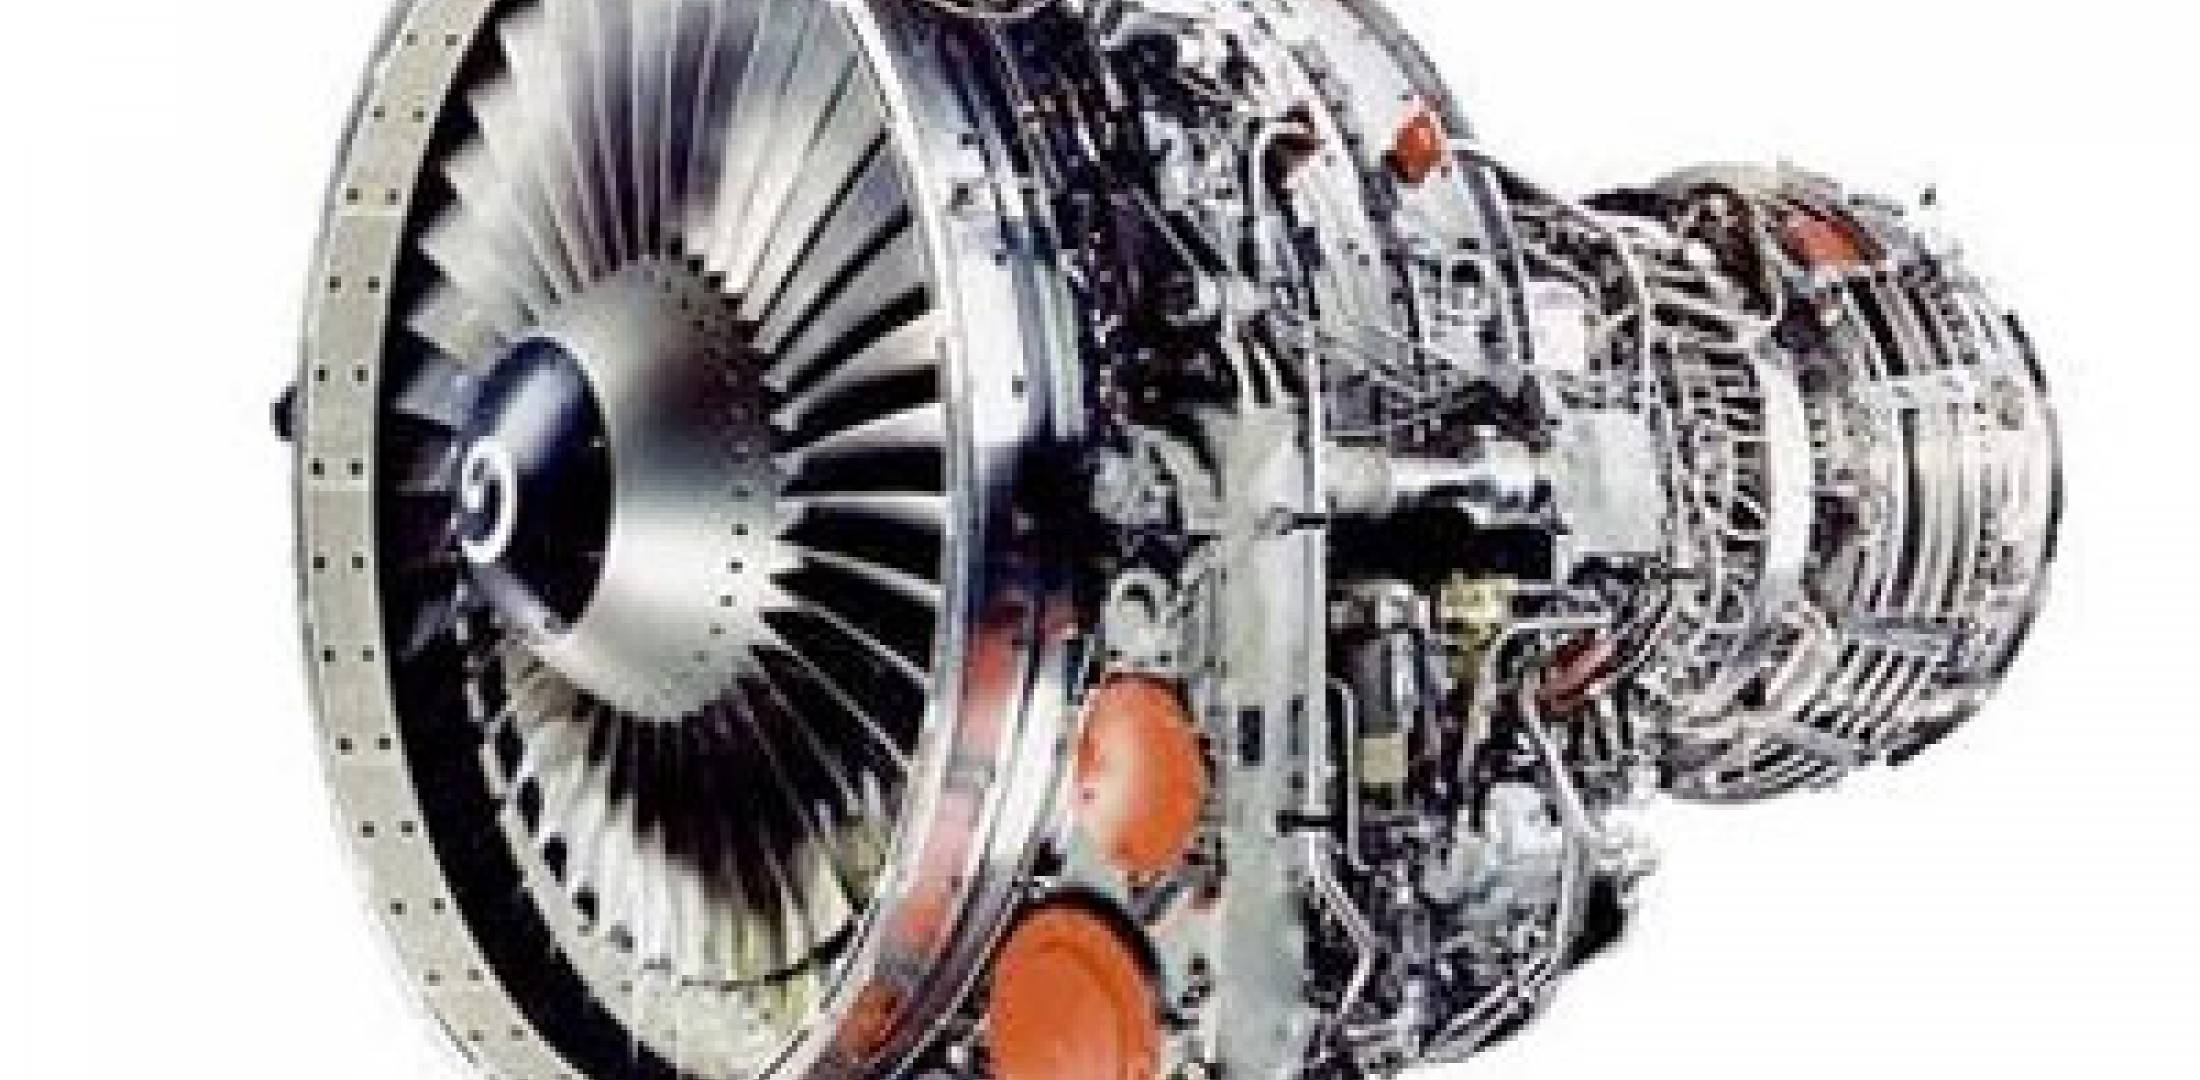 The CFM56-3 turbofan engine.